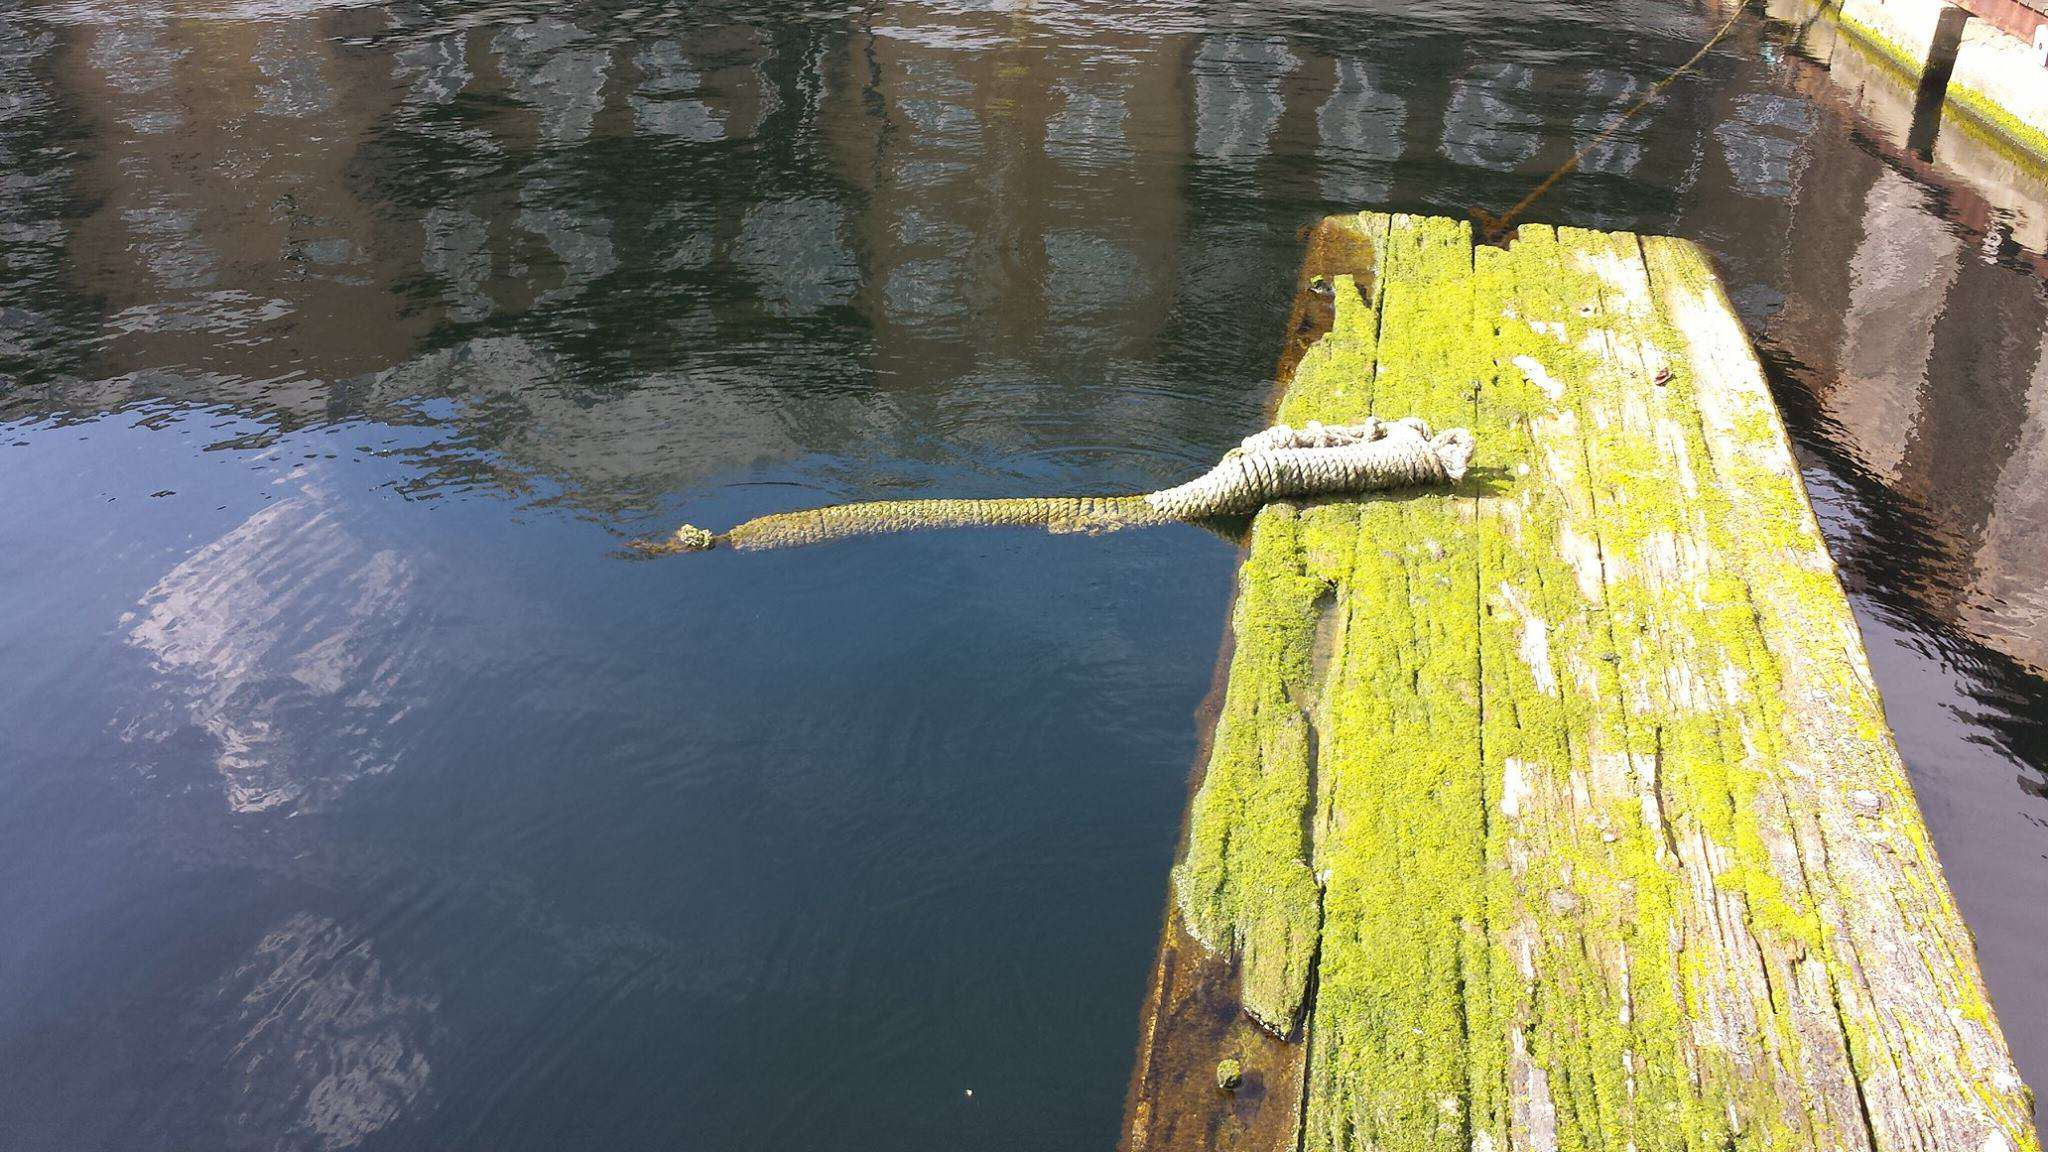 13559113 1182010251843579 5619429096940091575 o Britains First Wild Crocodile Spotted In River